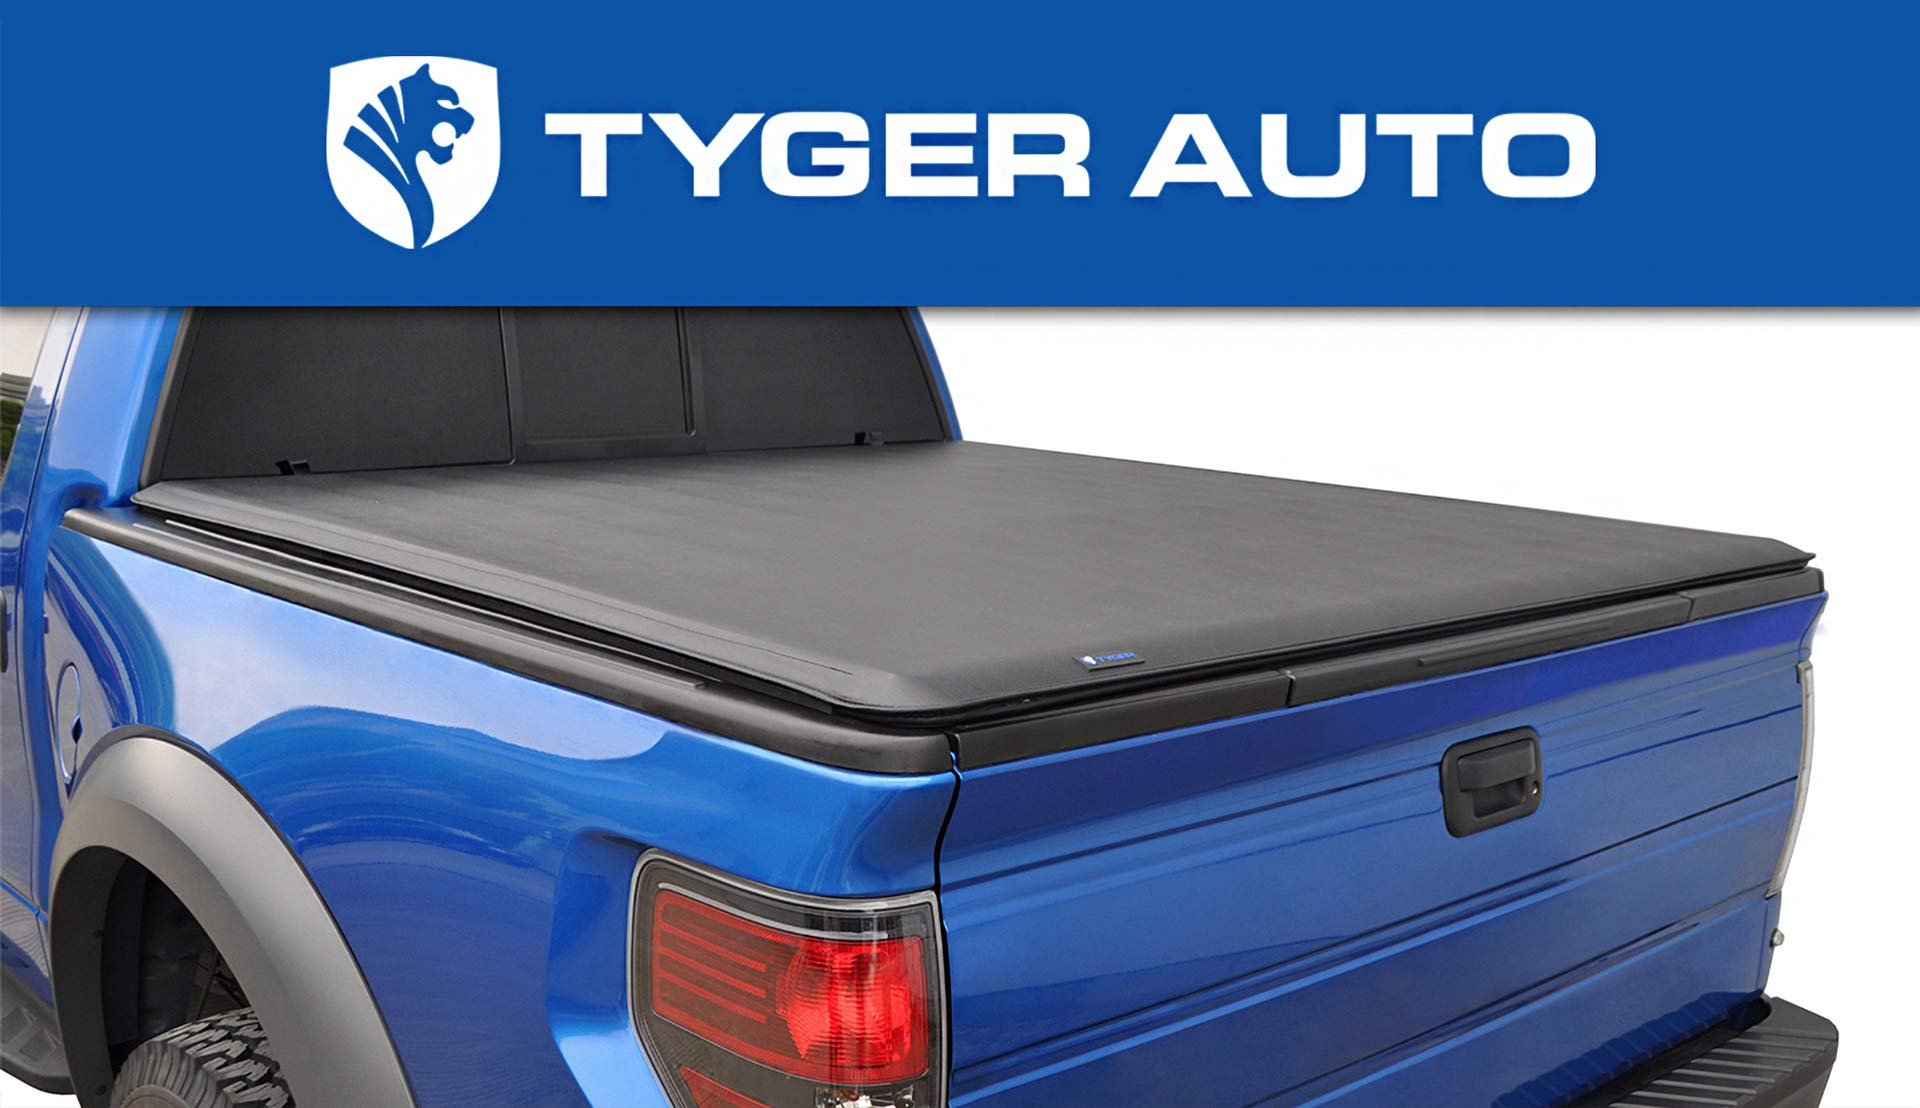 Tyger Auto T1 Roll Up Truck Bed Tonneau Cover TG-BC1D9047 Works with 2019 Ram 1500 New Body Style | Without Ram Box | Fleetside 6.4' Bed